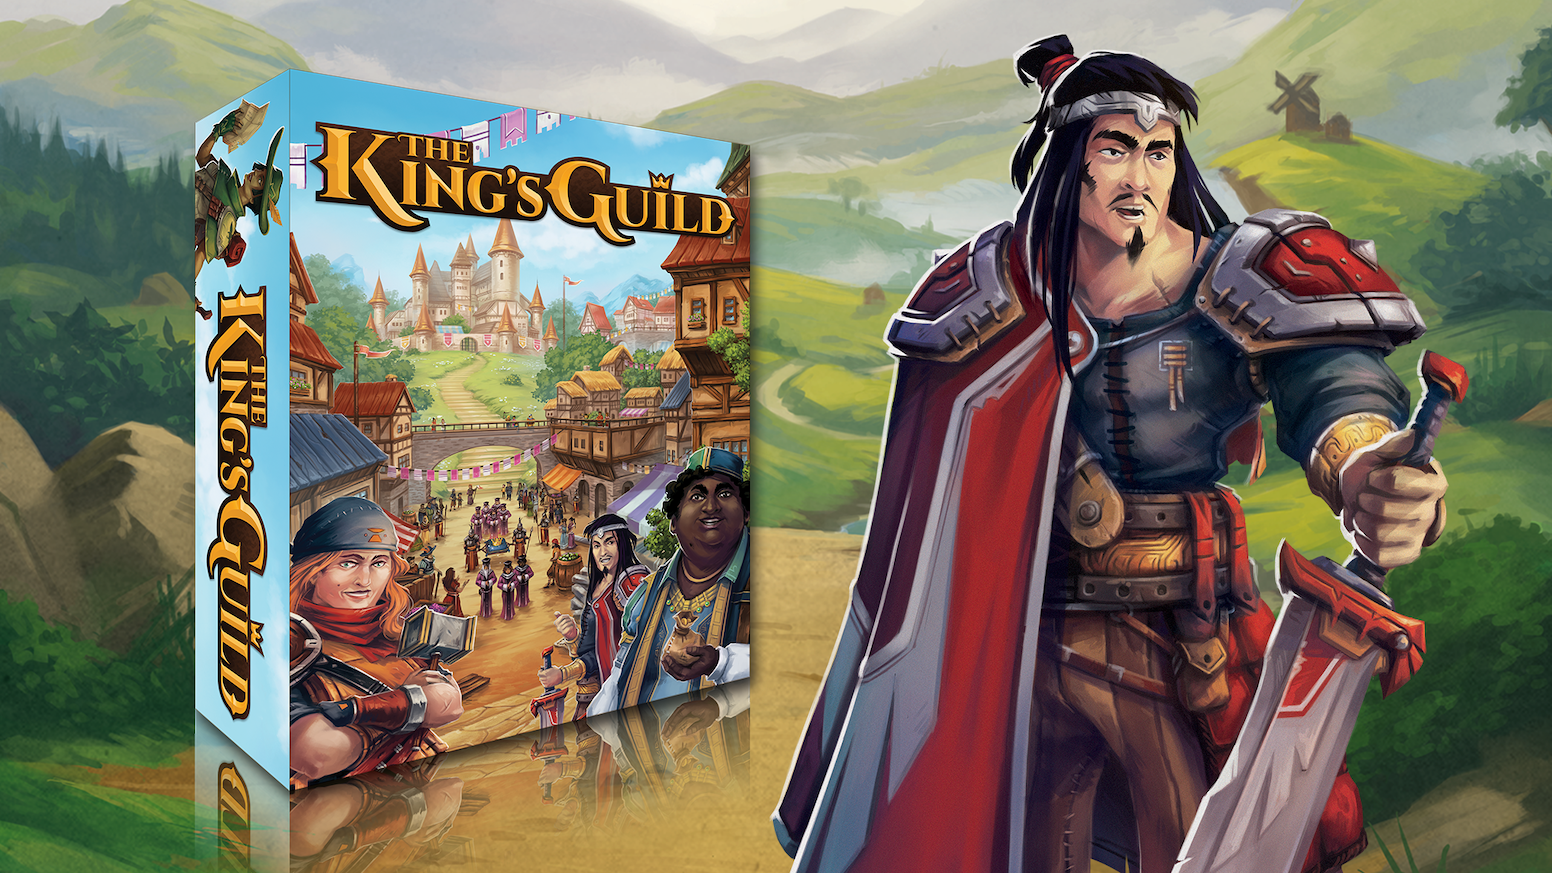 Forge powerful items, recruit heroes, earn treasure, & expand your empire to lead your guild to prosperity in this strategy board game.